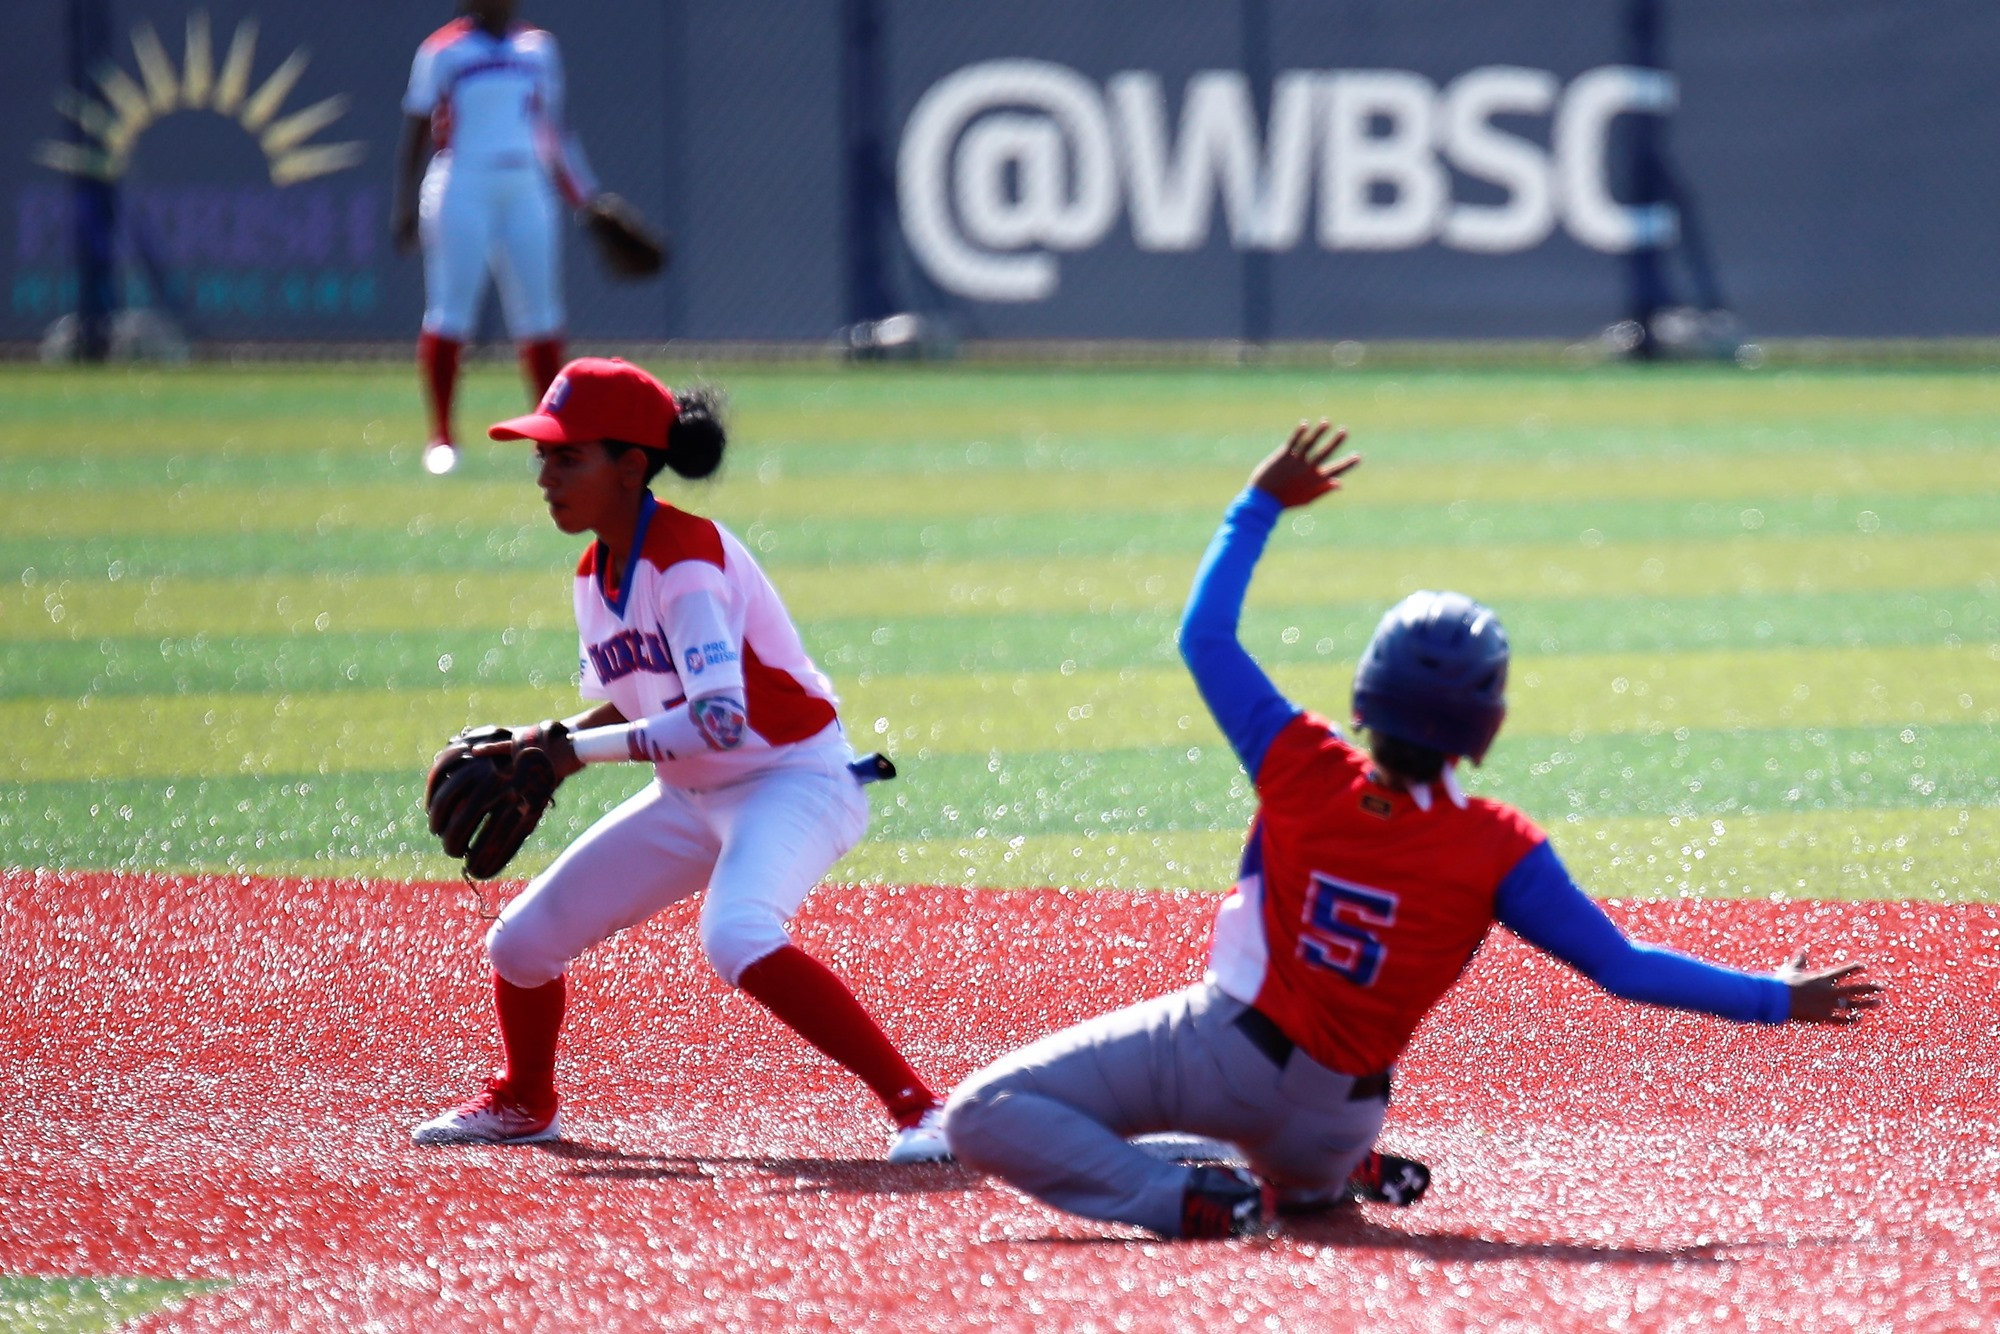 Cuba made a great use of the running game. Here Dayana Batista steals second